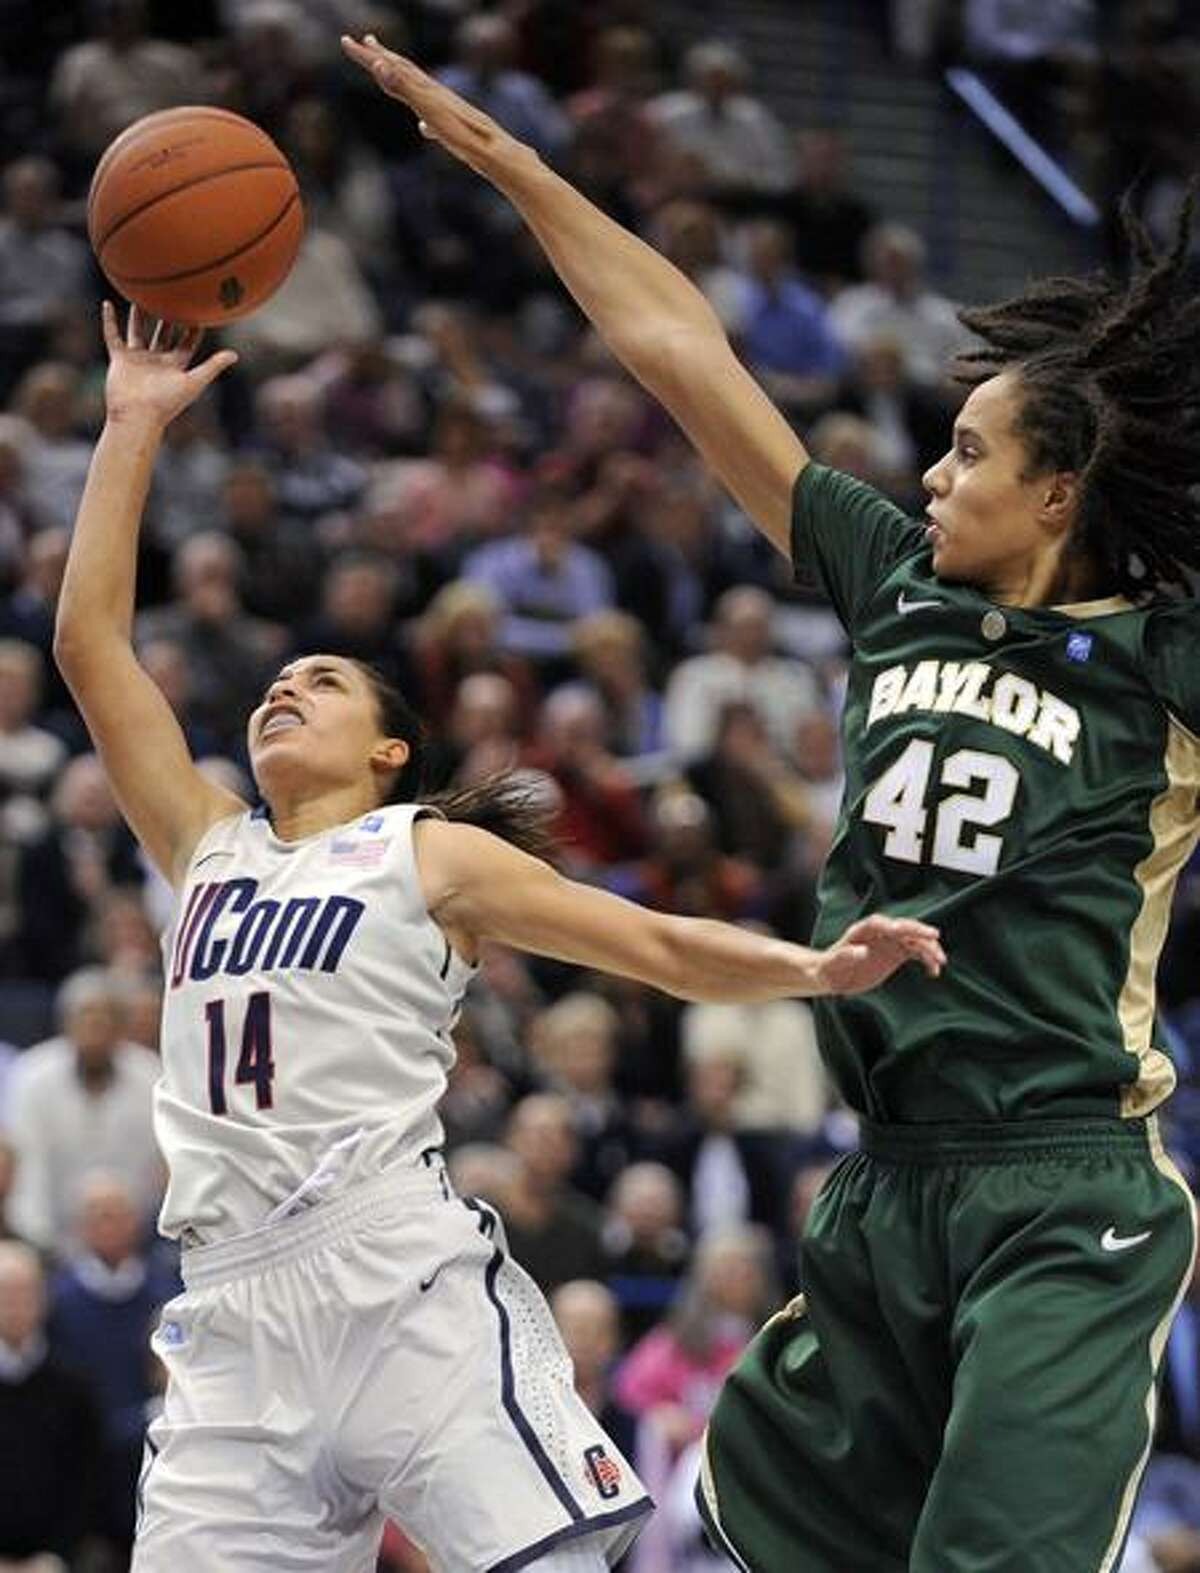 Baylor's Brittney Griner, right, defends on a shot by Connecticut's Bria Hartley during the second half of Connecticut's 65-64 victory in an NCAA college basketball game in Hartford, Conn., on Tuesday, Nov. 16, 2010. Griner scored 19 points, had seven rebounds and nine blocked shots. (AP Photo/Fred Beckham)